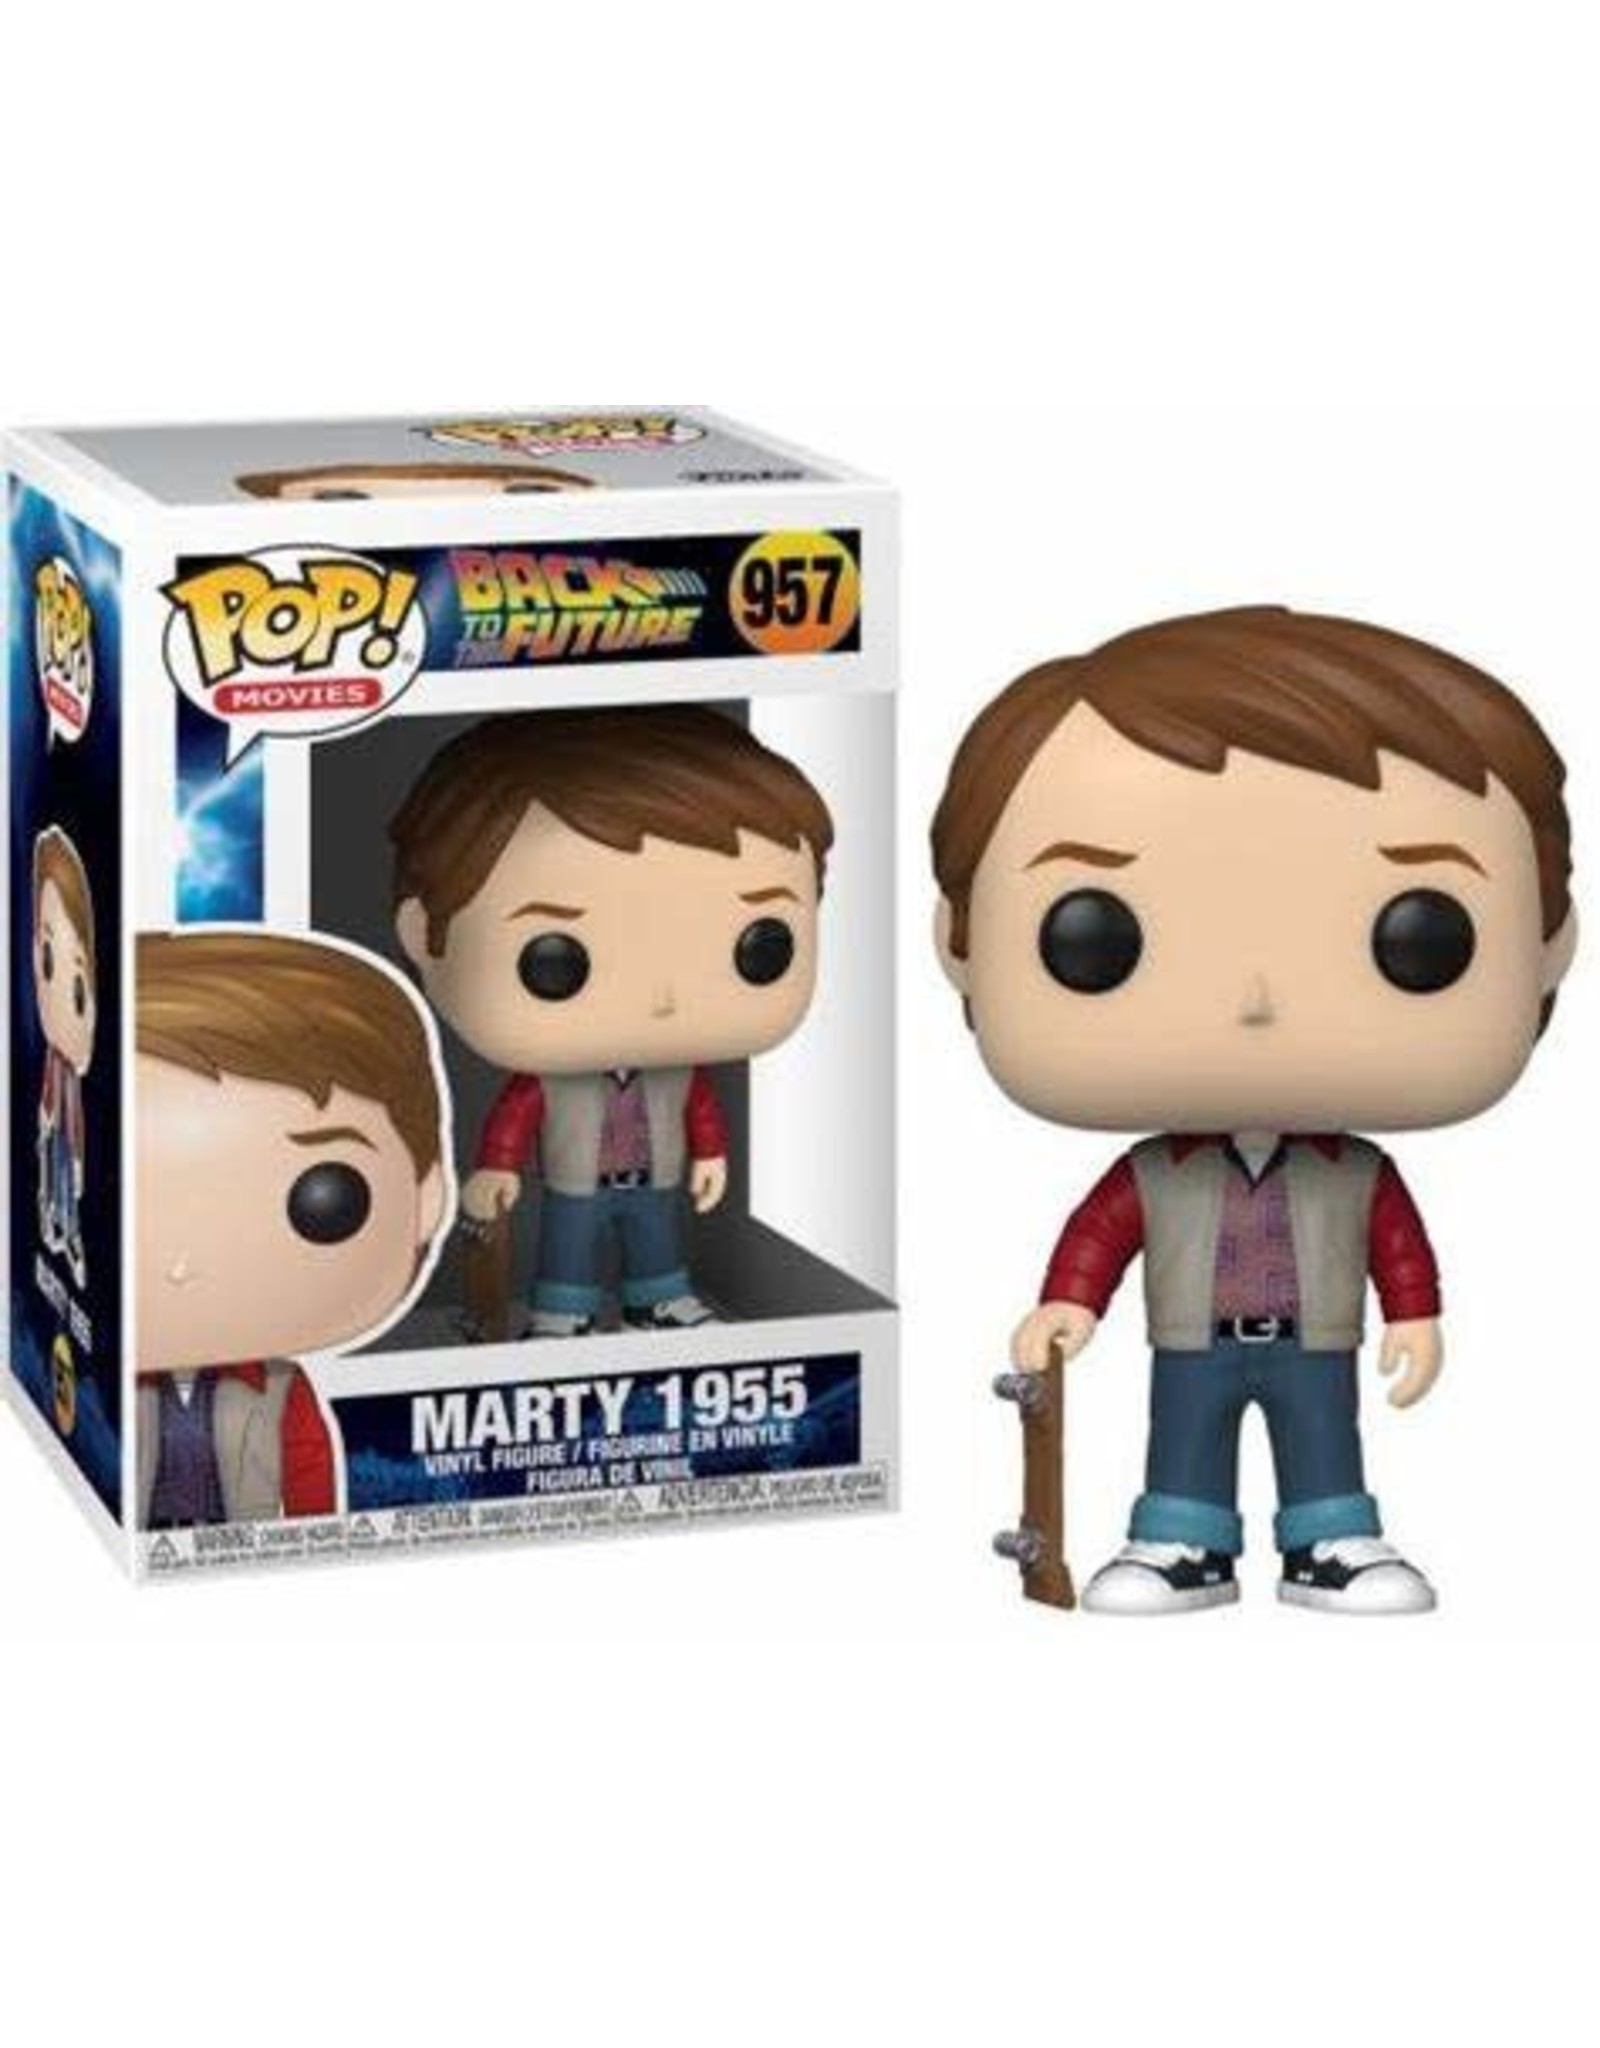 Funko BACK TO THE FUTURE POP! N° 957 - Marty 1955